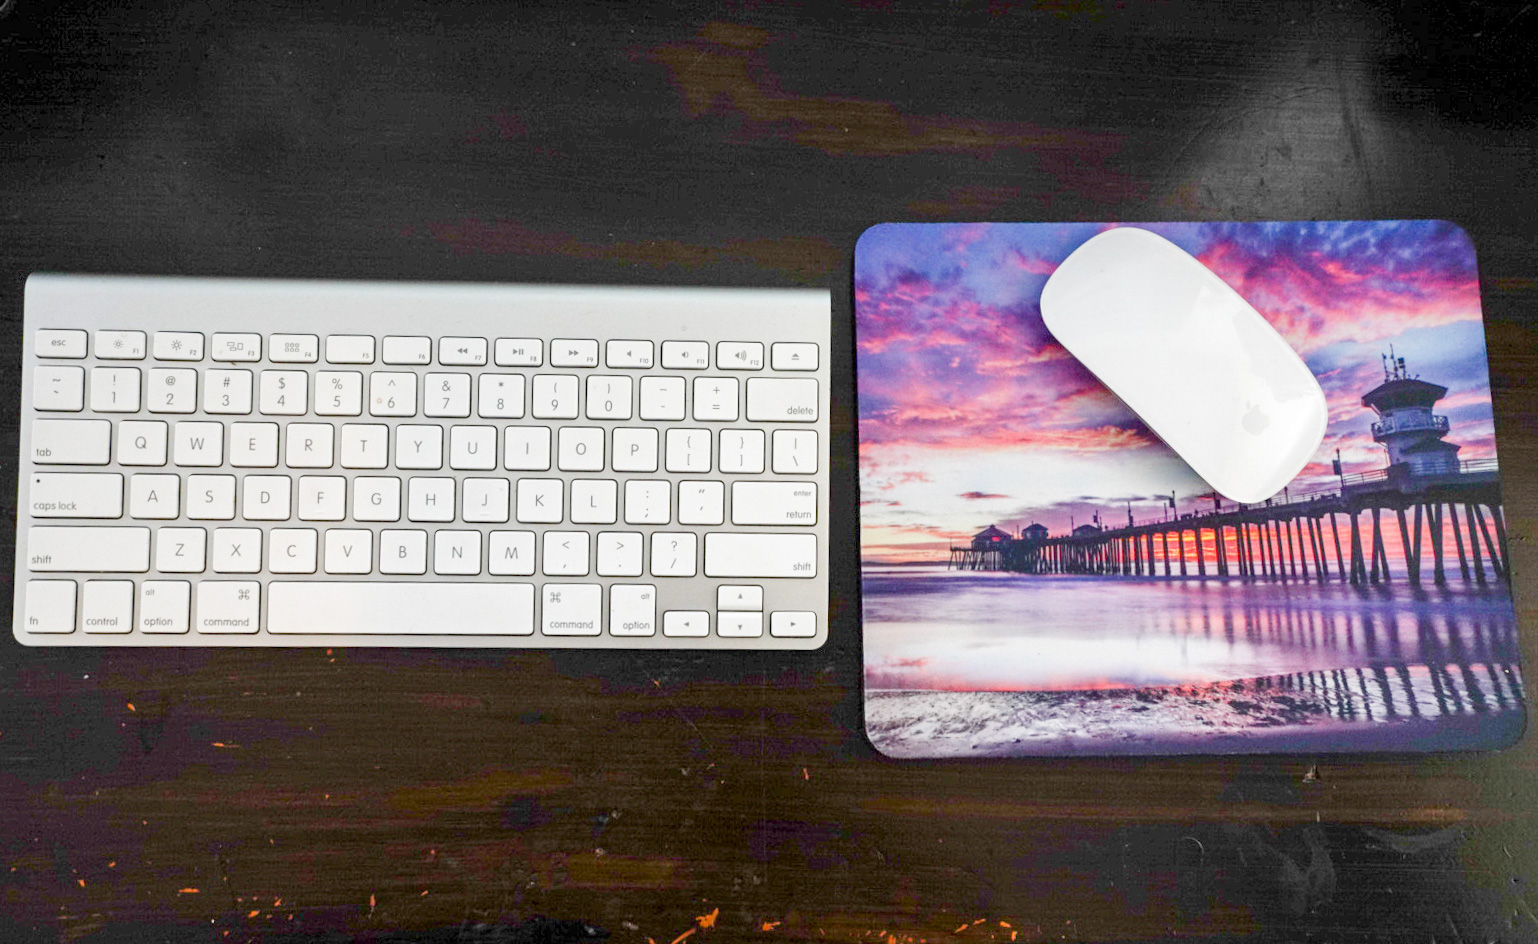 Mouse Pads Ricky Shoots Sturdy Our Come In One Perfect Size 925 X 775 And Are 1 8 Thick Your Photo Will Appear On A Fabric Surface Be Reinforced By